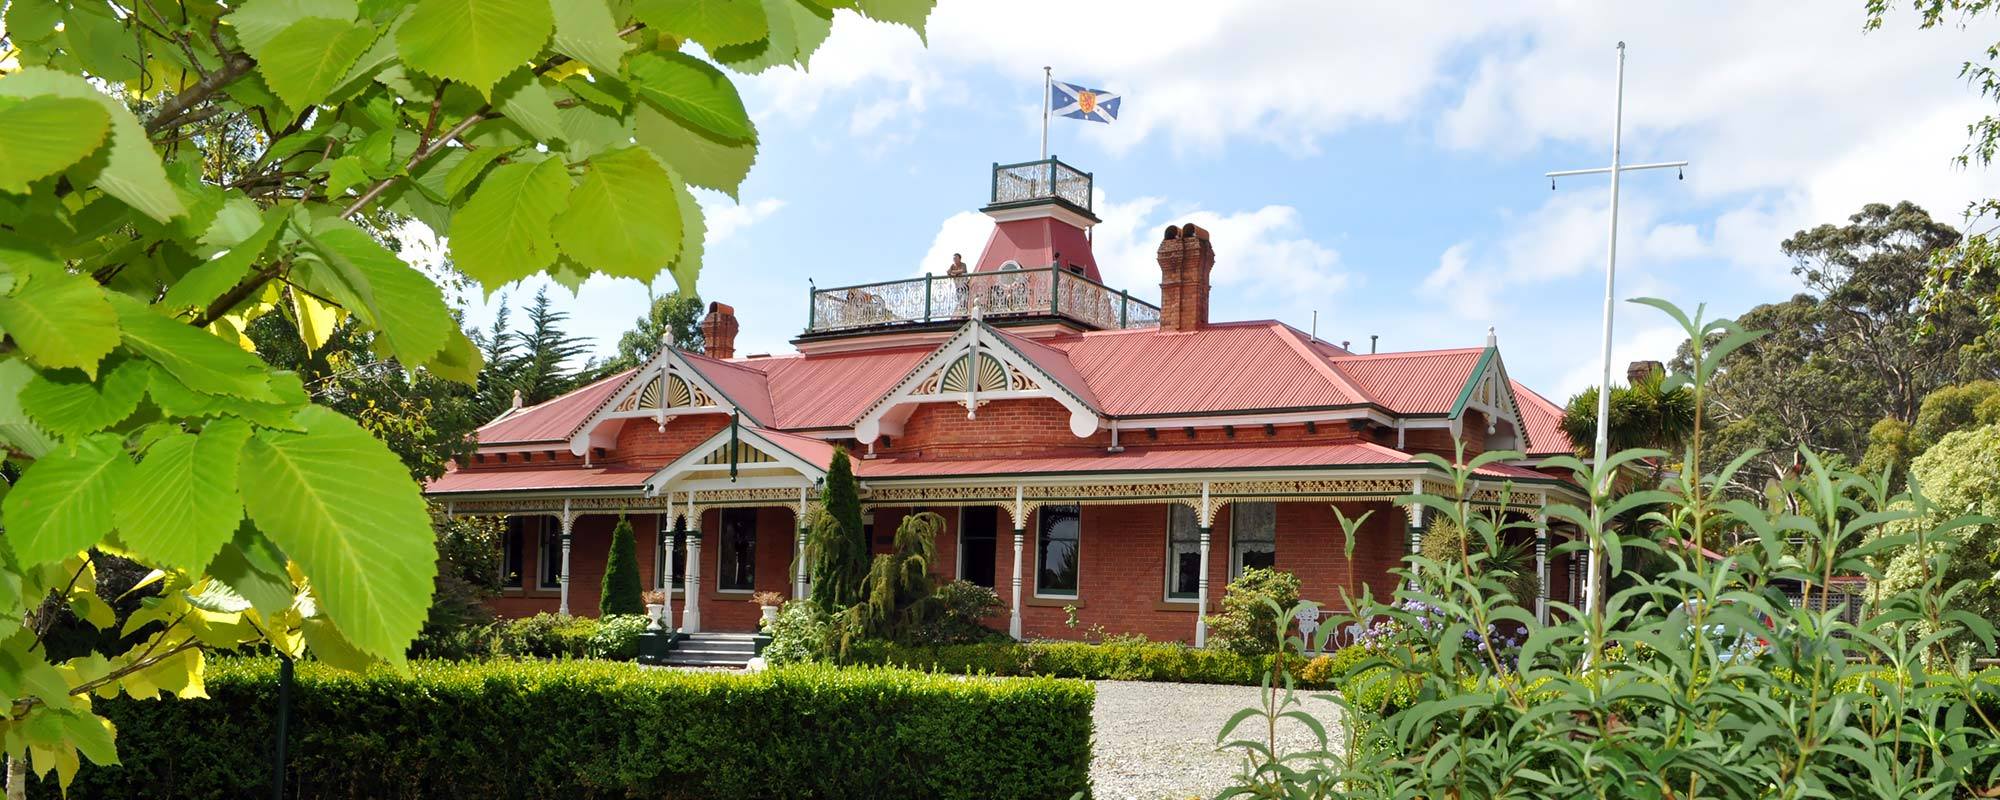 Ormiston House, Strahan, Tasmania